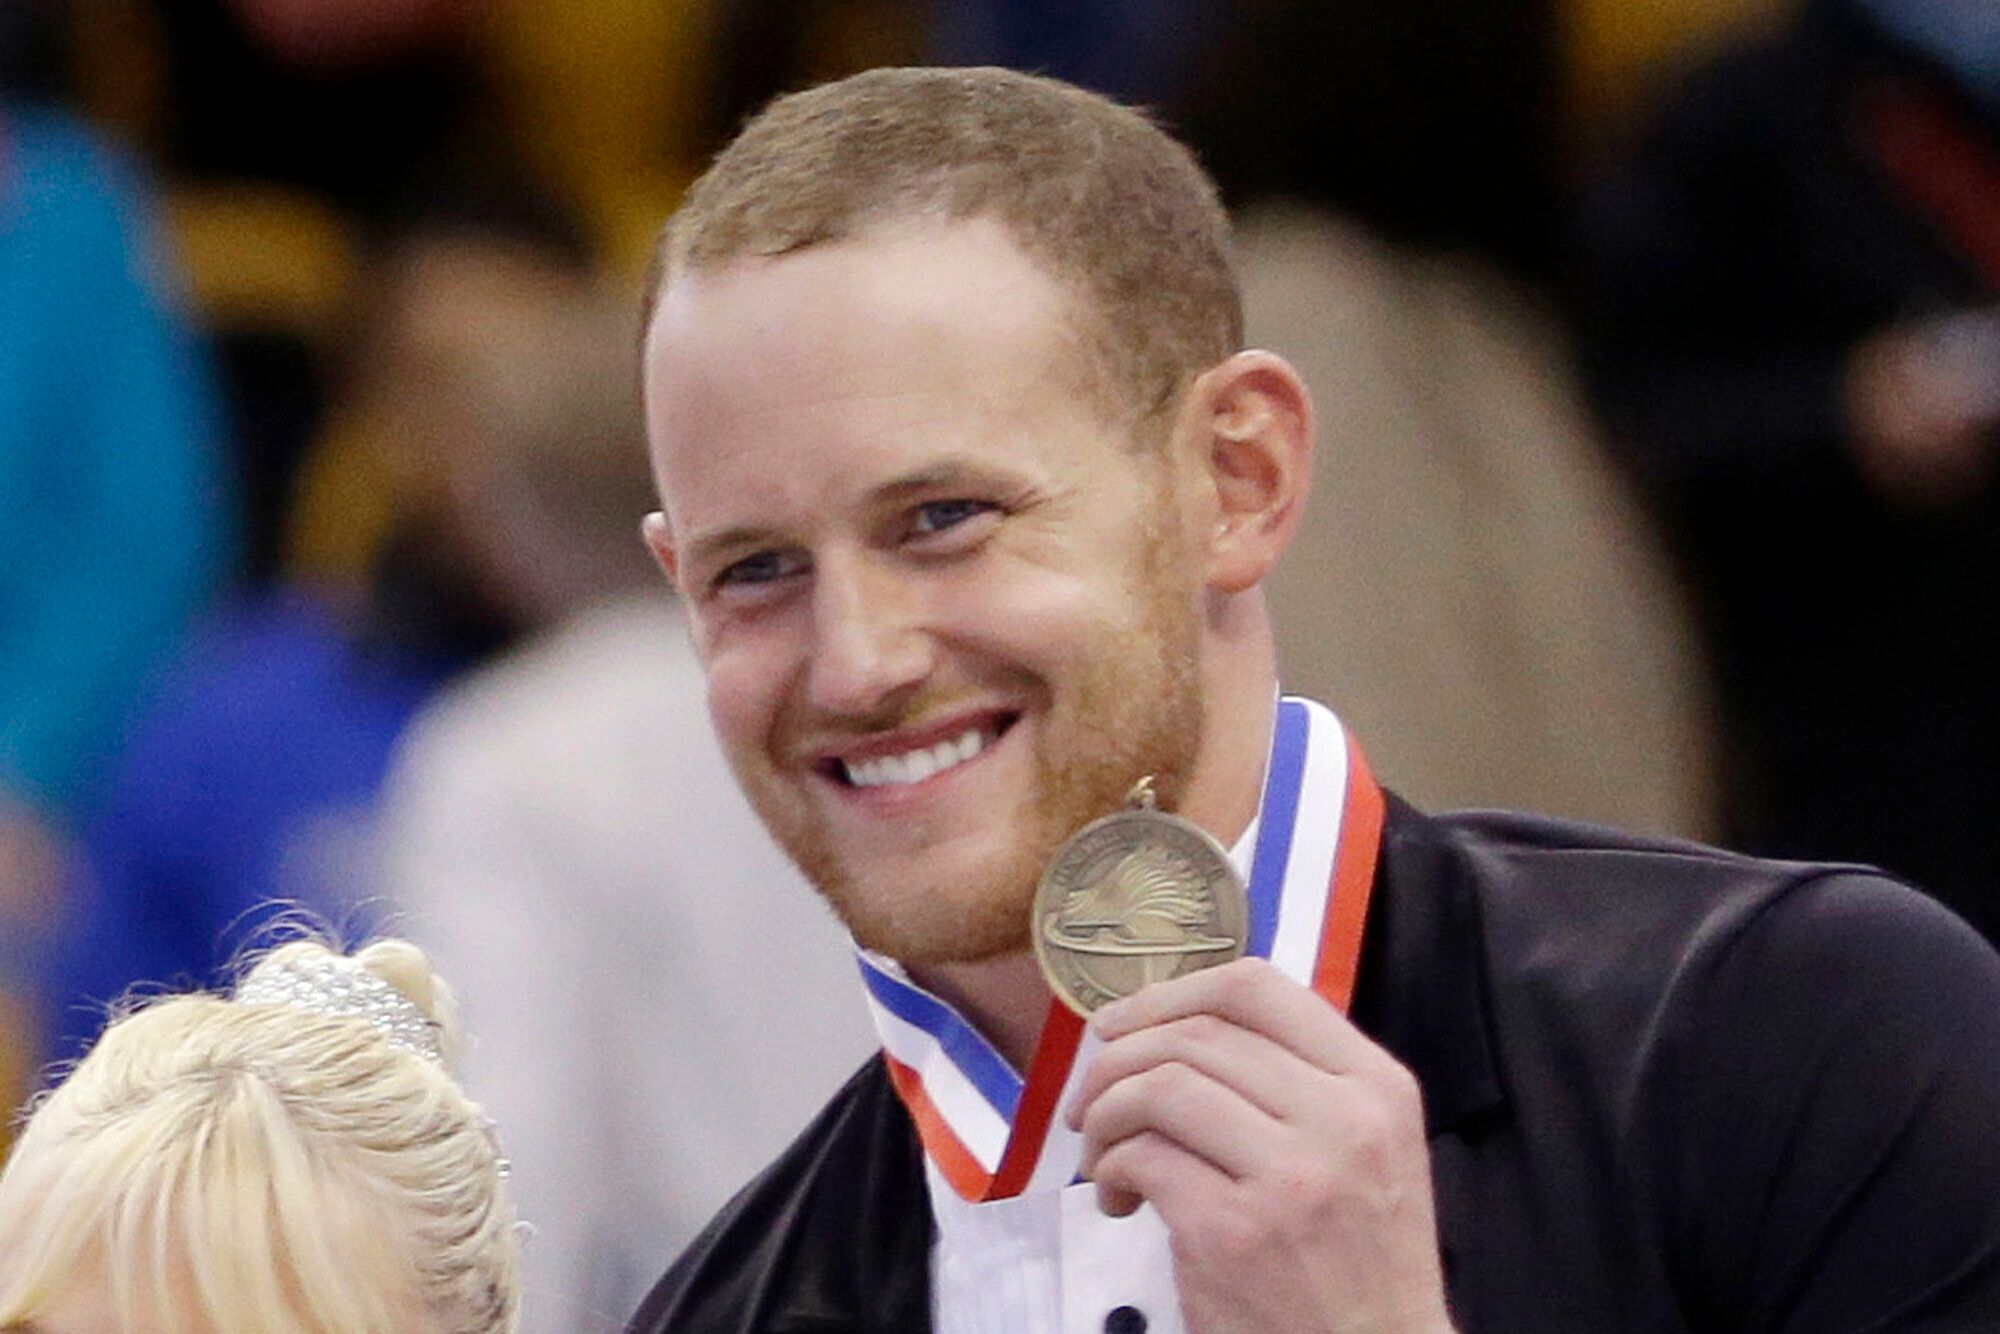 Bronze medalist John Coughlin smiles during a 2014 award ceremony at the U.S. Figure Skating Championships in Boston. Coughli